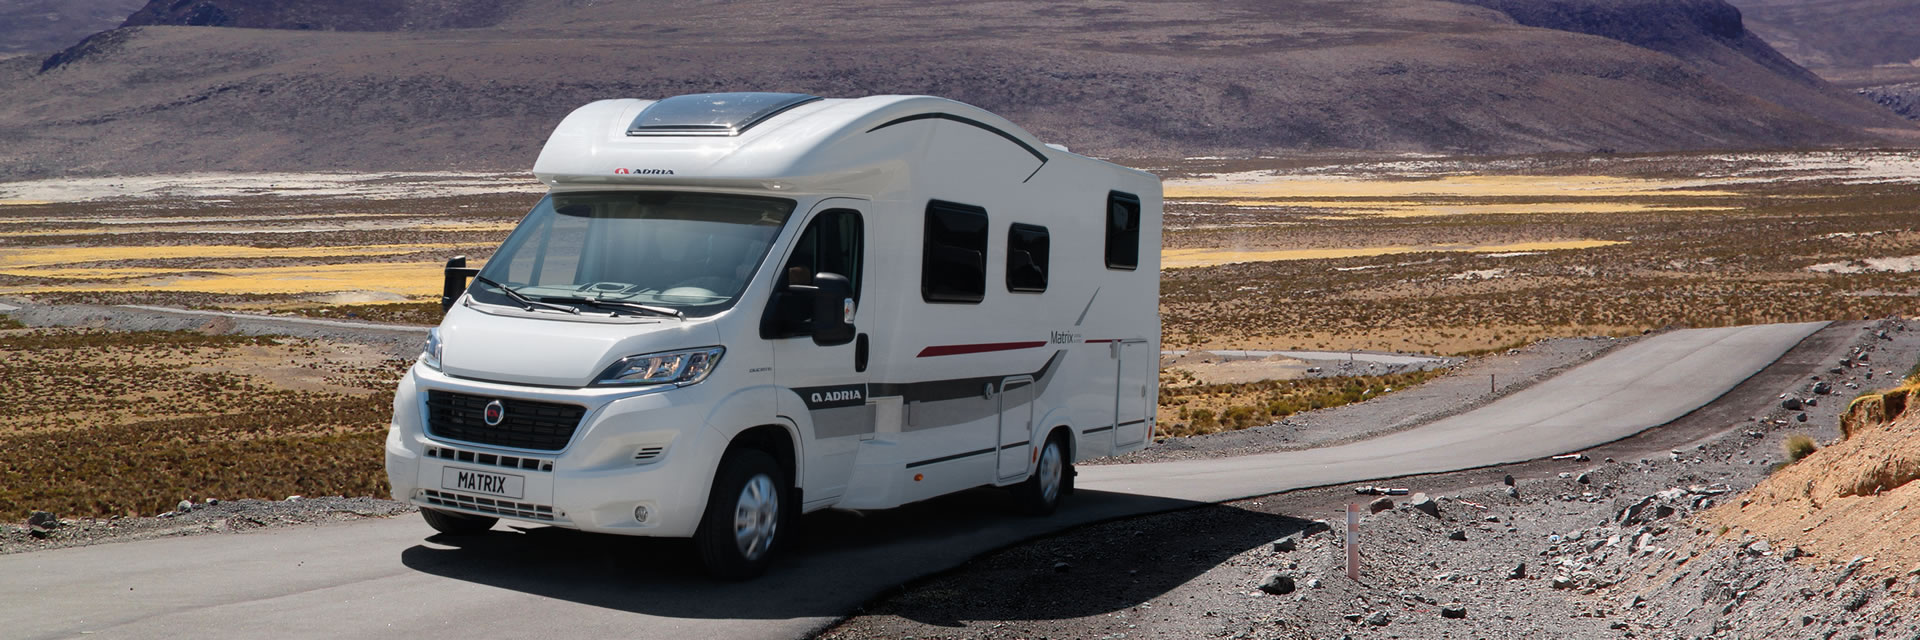 Adria Matrix Plus M 670 SP zunanjost